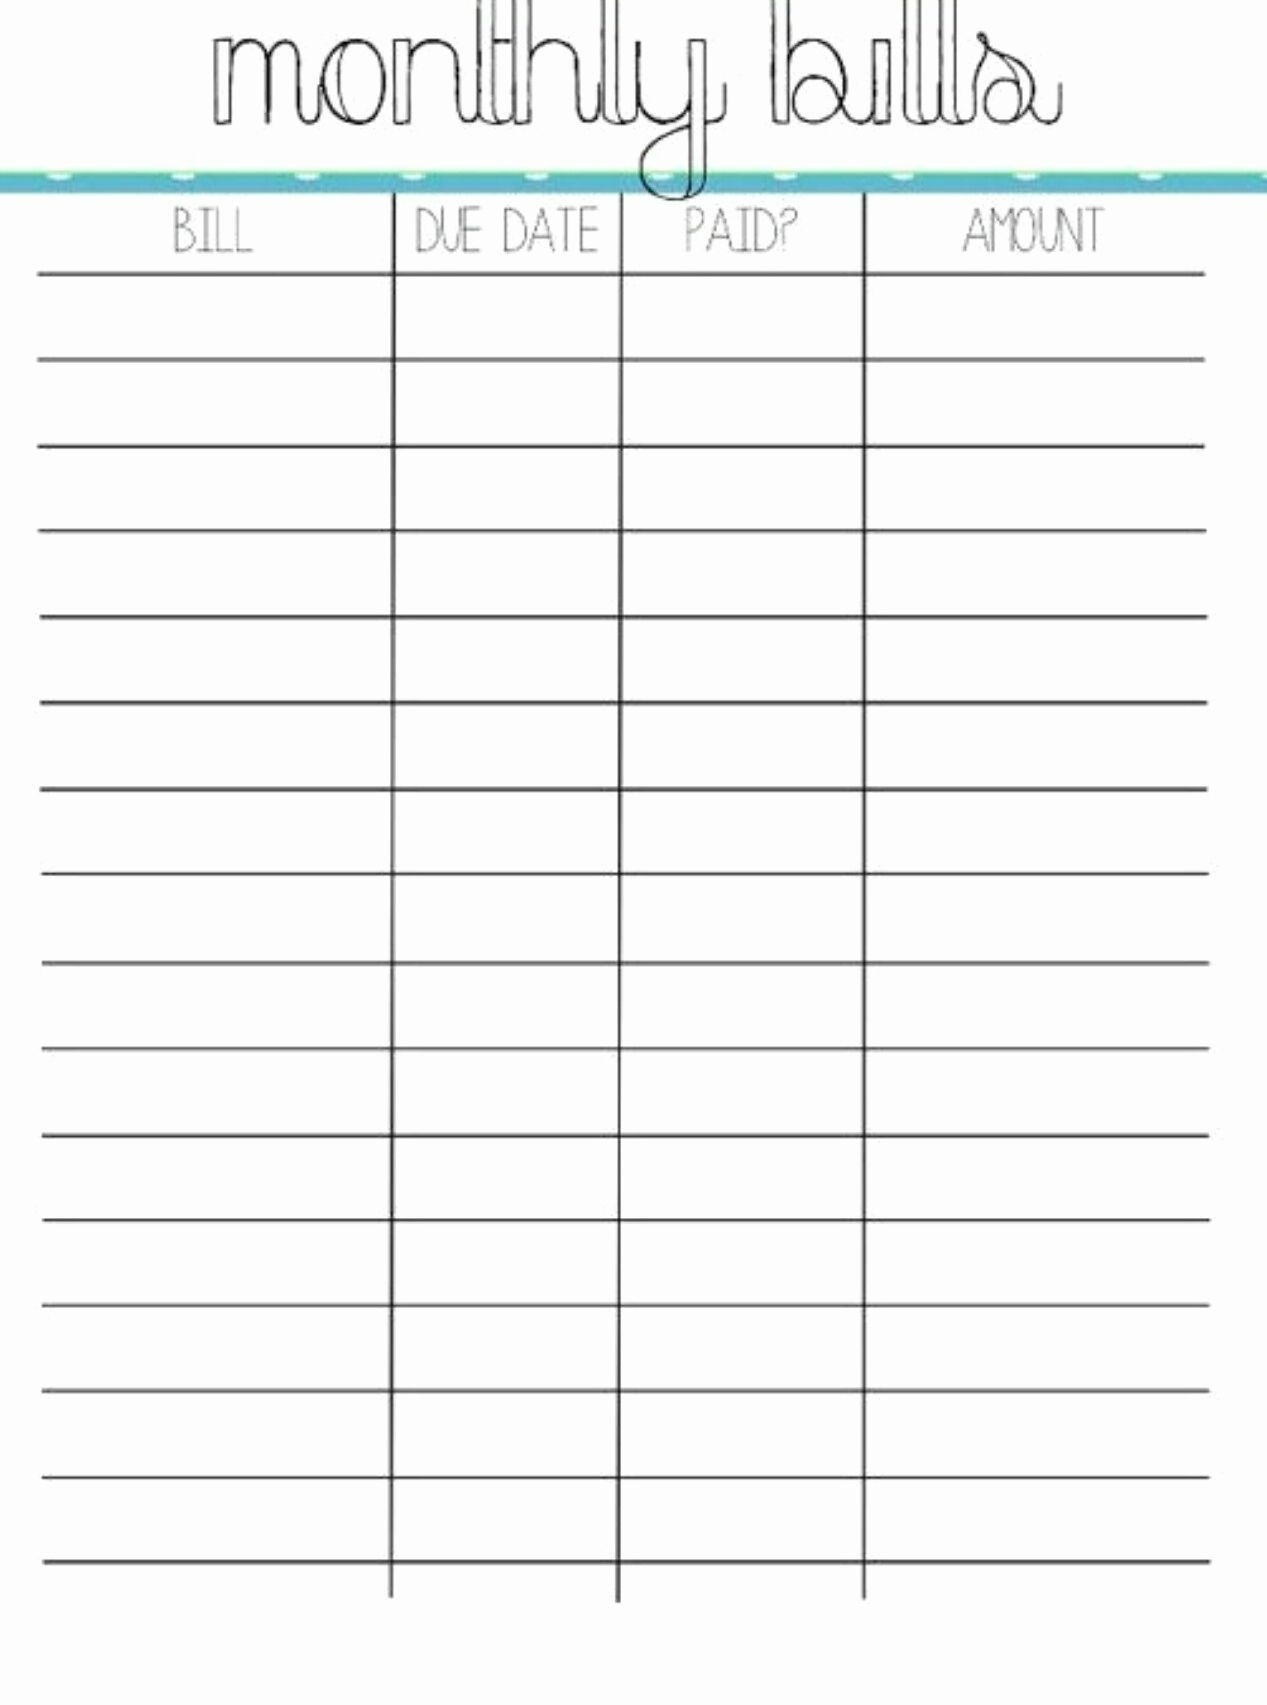 Budget Worksheet In 2020 | Monthly Budget Template  Bill Paying Worksheet Pdf